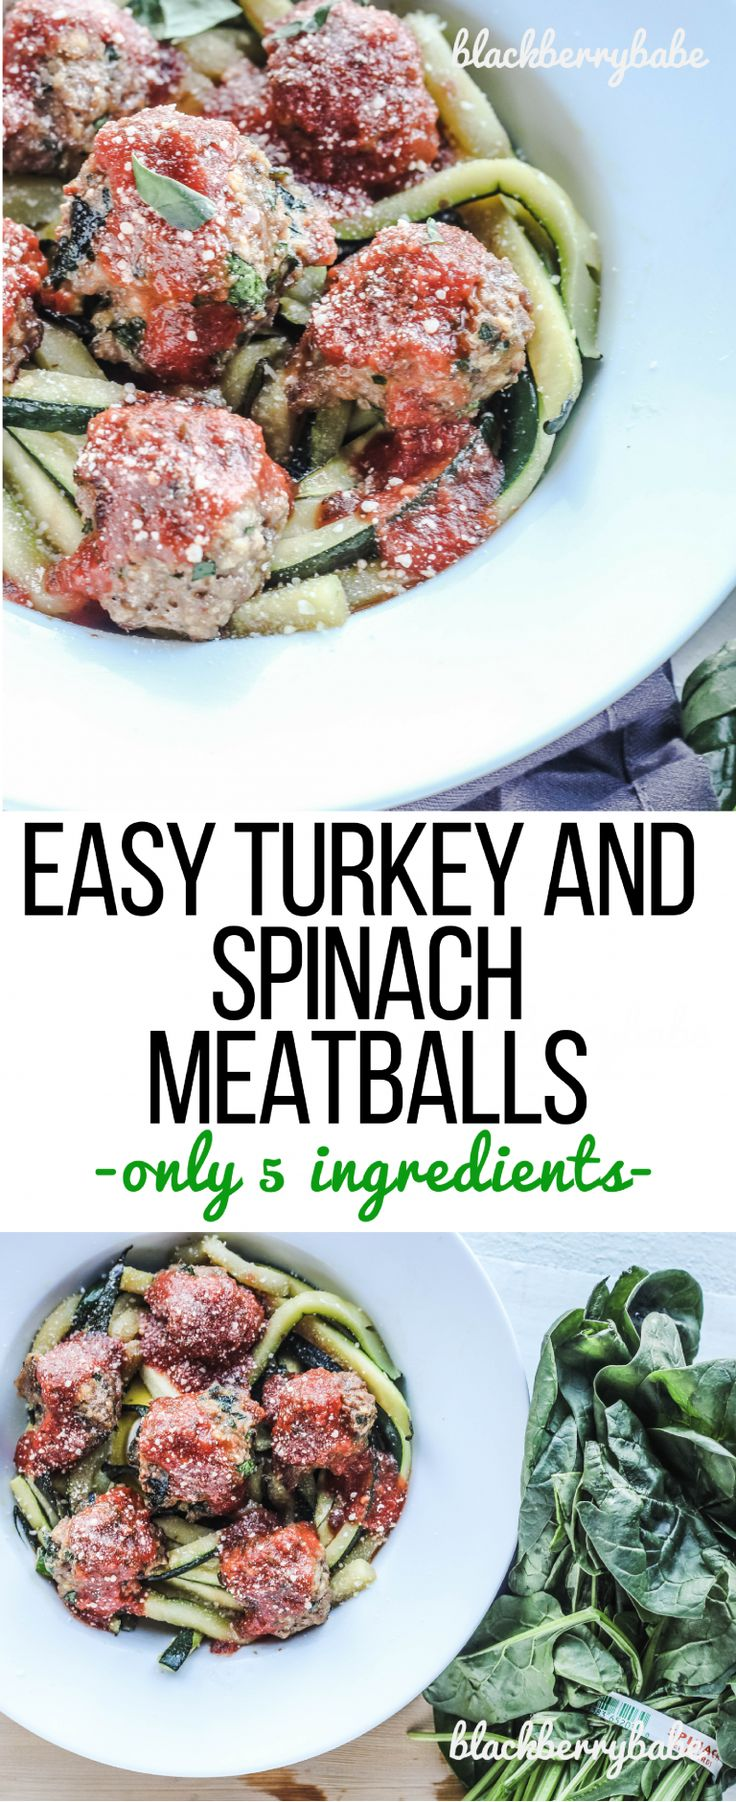 Your family will love these Easy Turkey Spinach Meatballs! Serve with marinara over rice, pasta or zucchini noodles for an easy weeknight dinner.